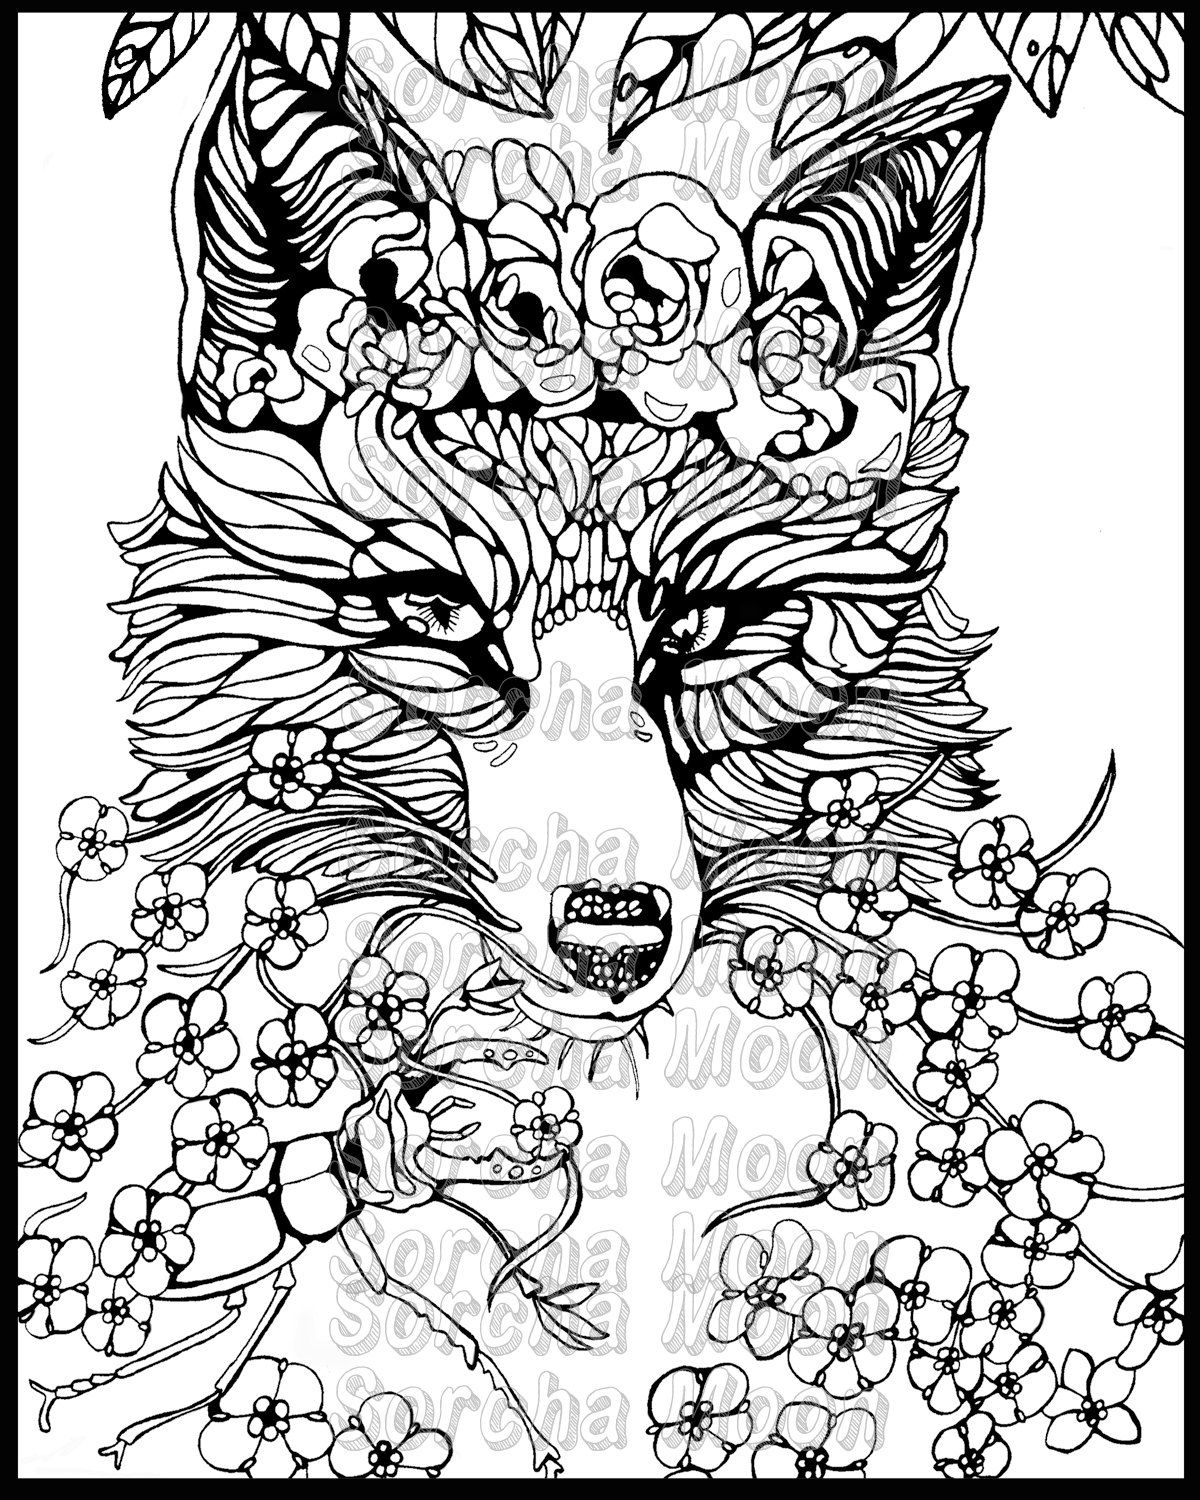 1200x1500 Fox Forget Me Nots Coloring Page For Adults Forget, Foxes And Etsy